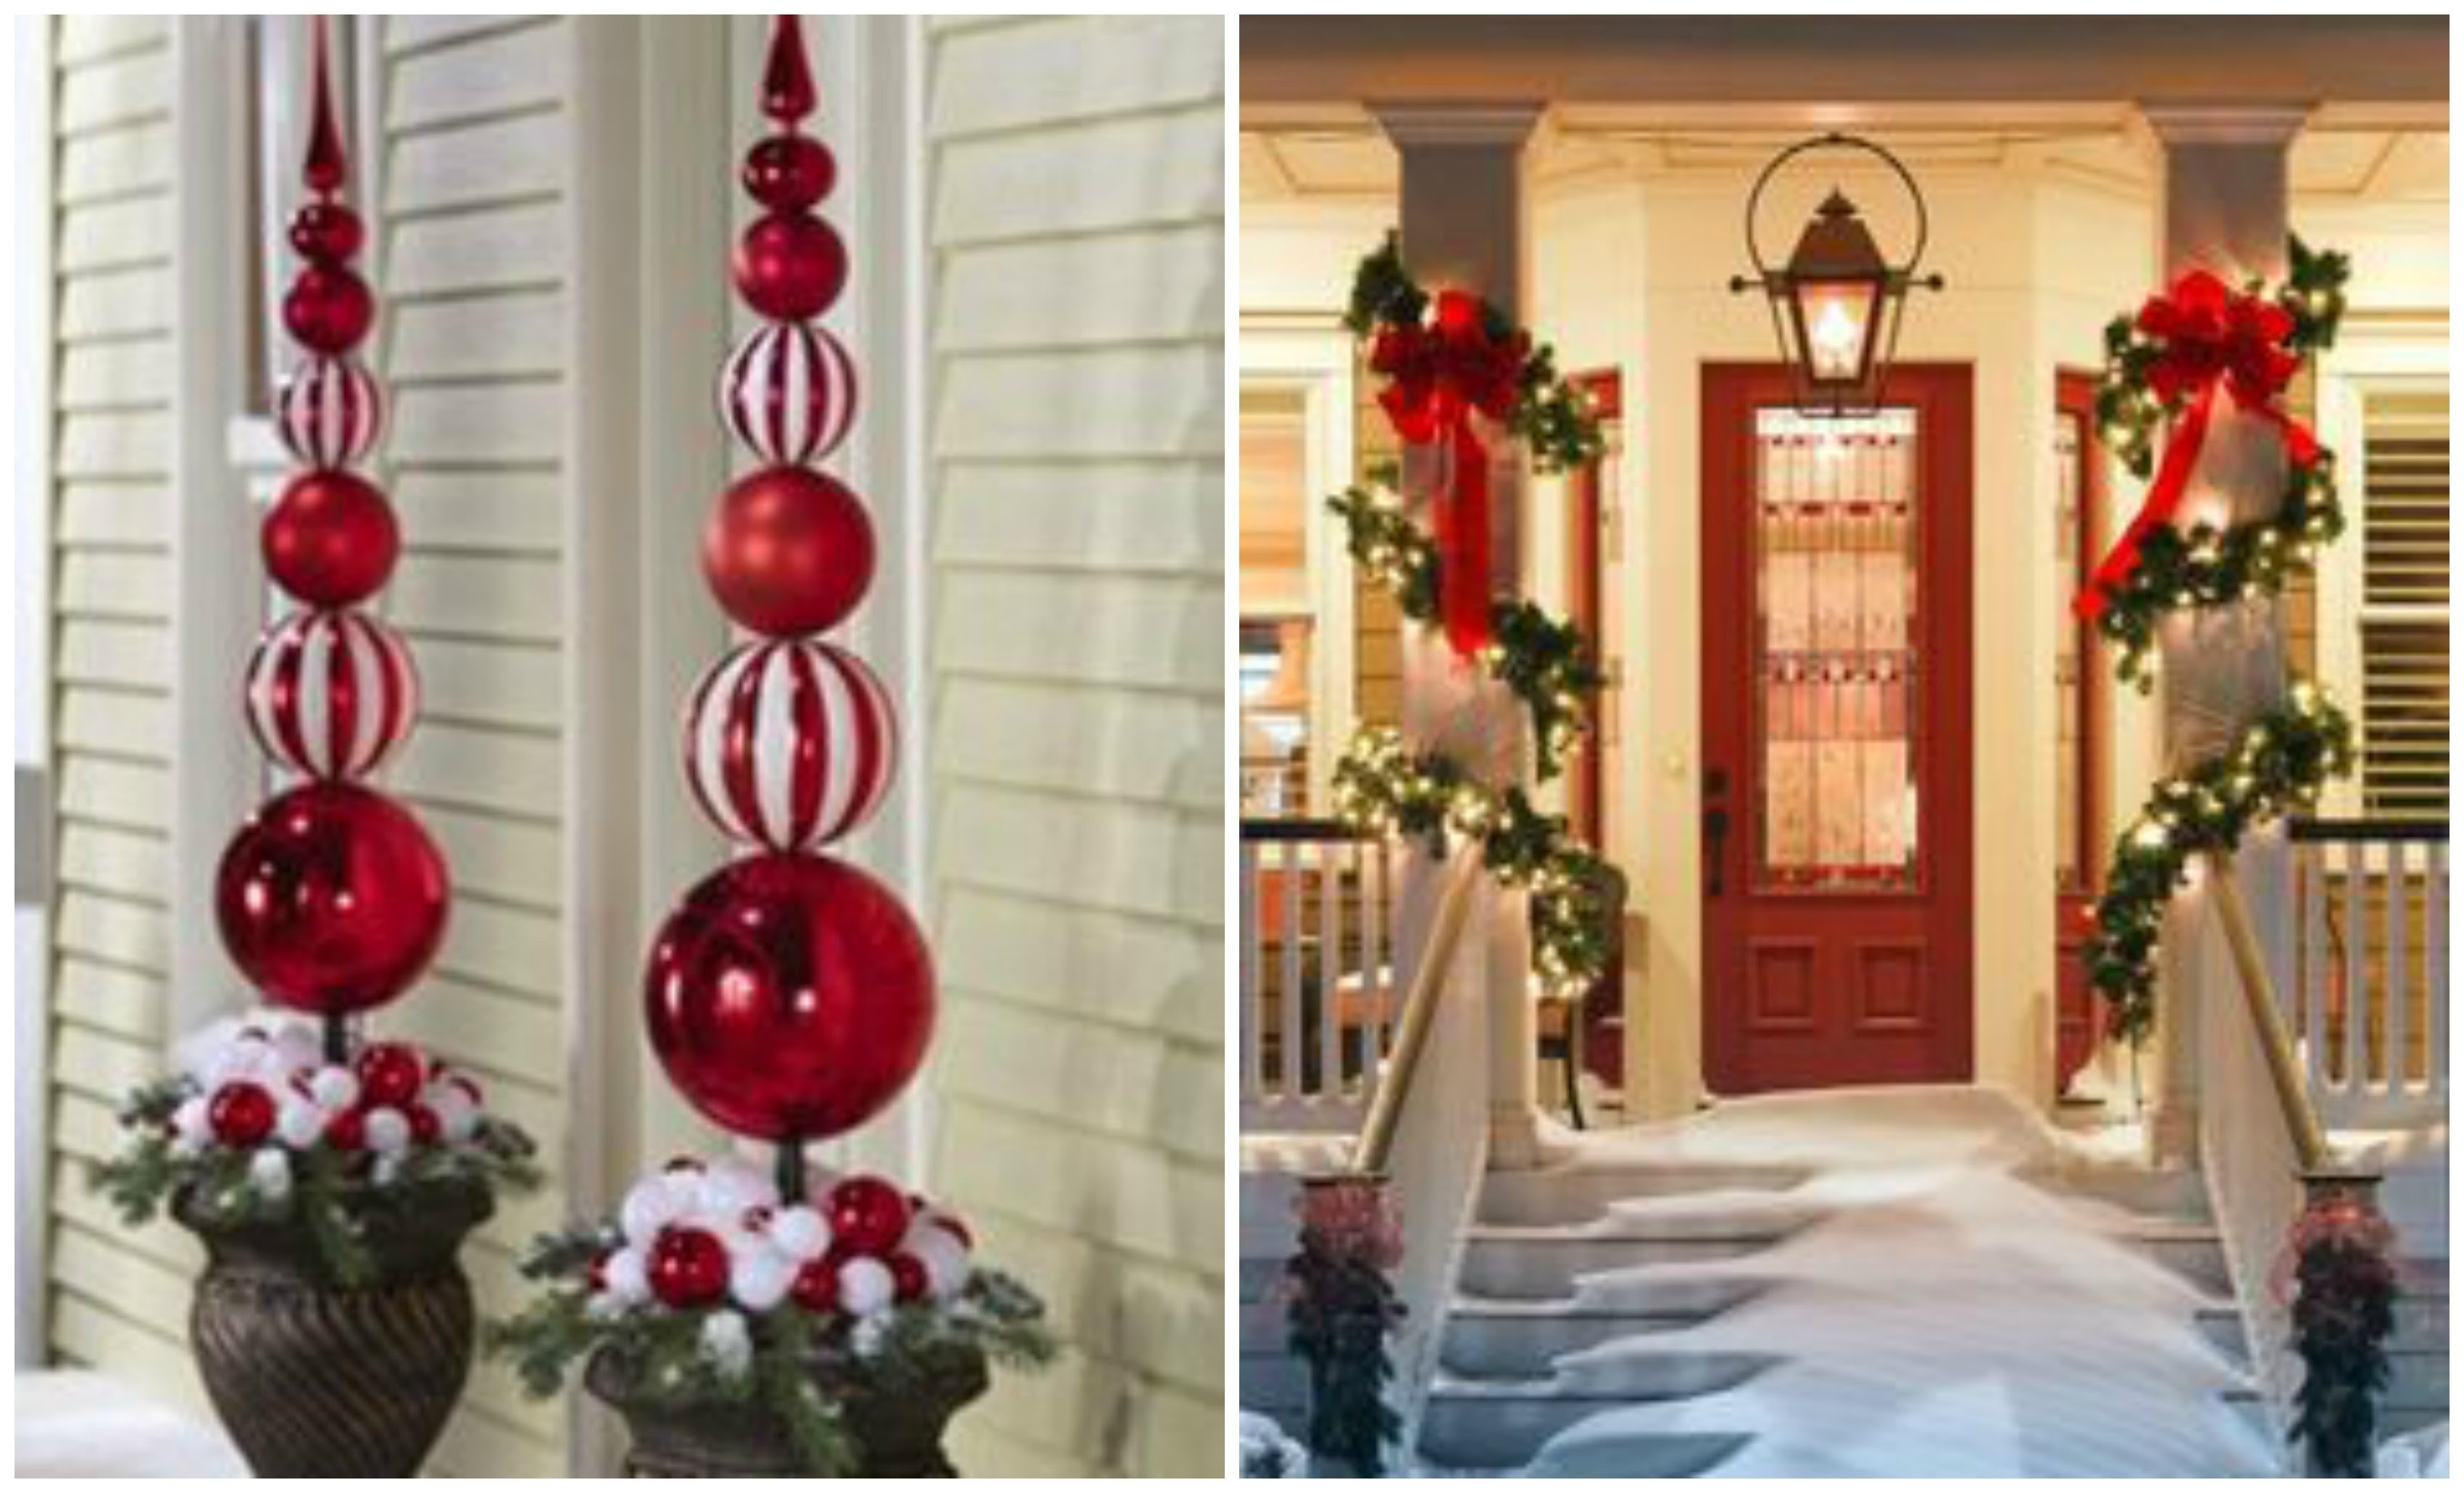 10 Ideal Christmas Decorating Ideas On A Budget outside holiday christmas decorating ideas youtube 3 2021